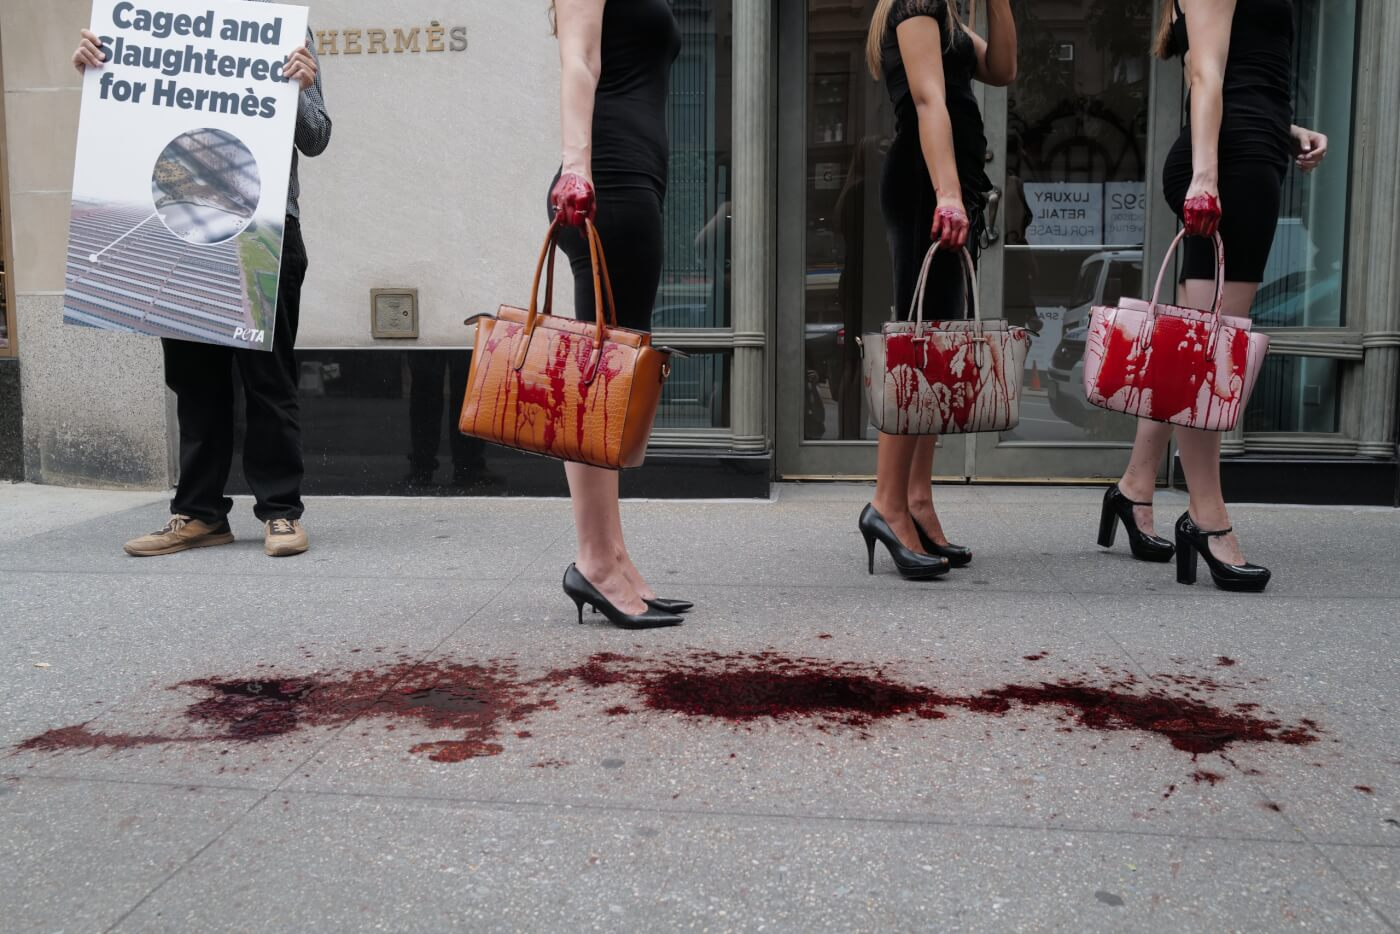 PETA supporters urge hermes to ban exotic skins in NYC amid global protests